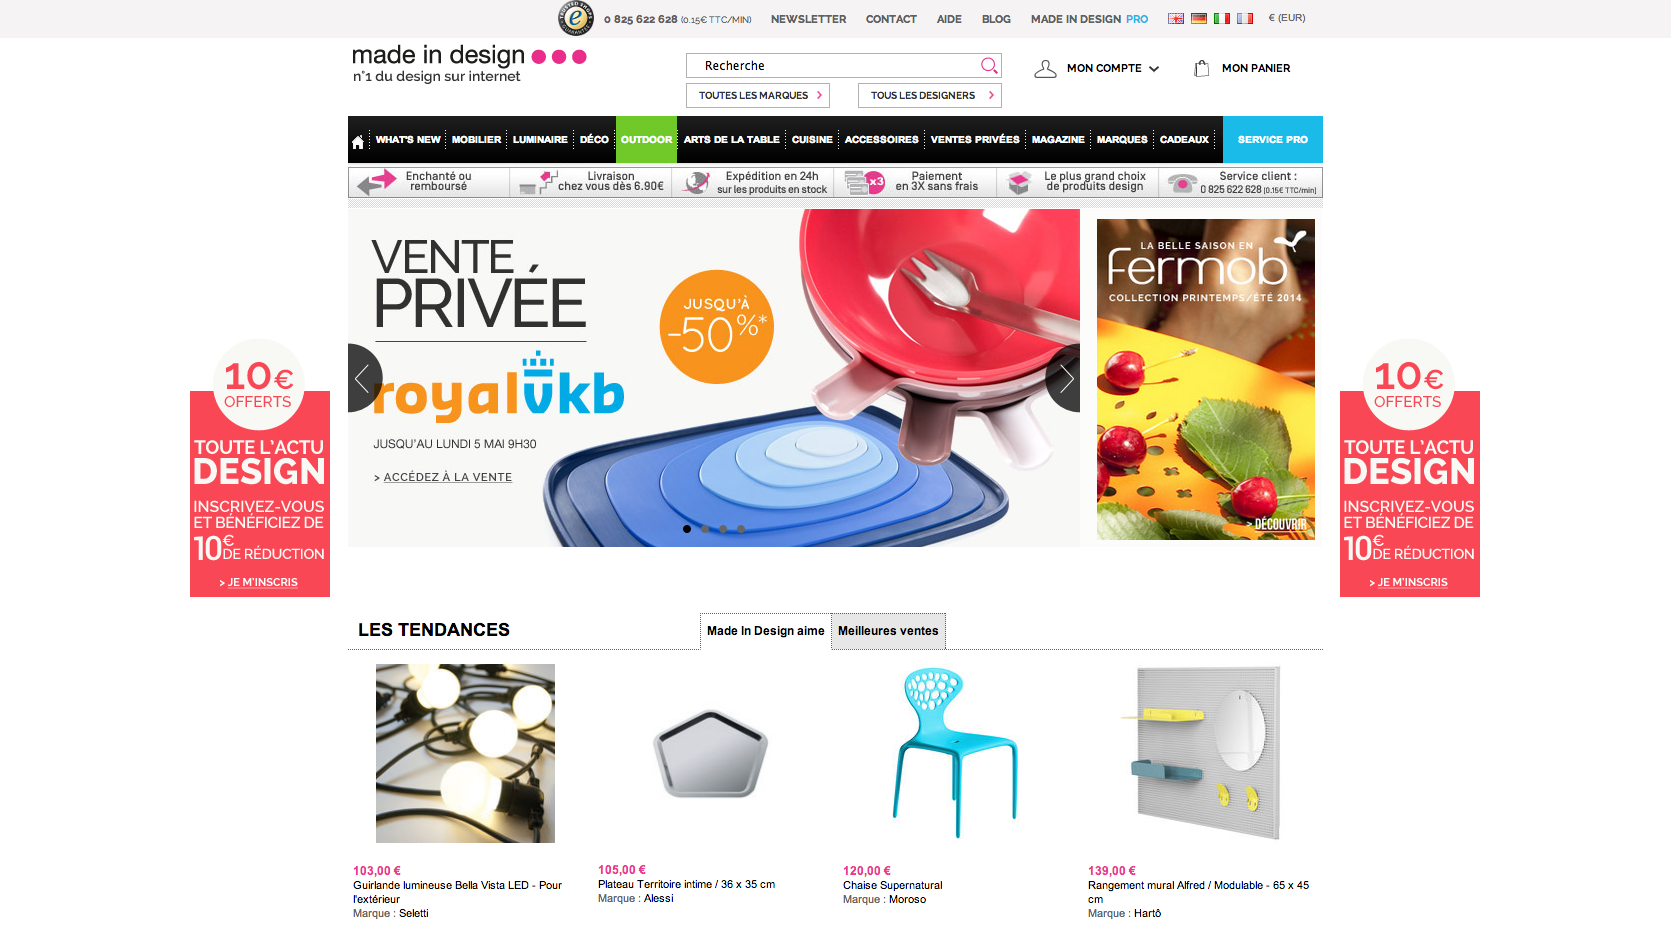 ergo-note-revue-ergonomique-du-site-made-in-design-com-frontpage